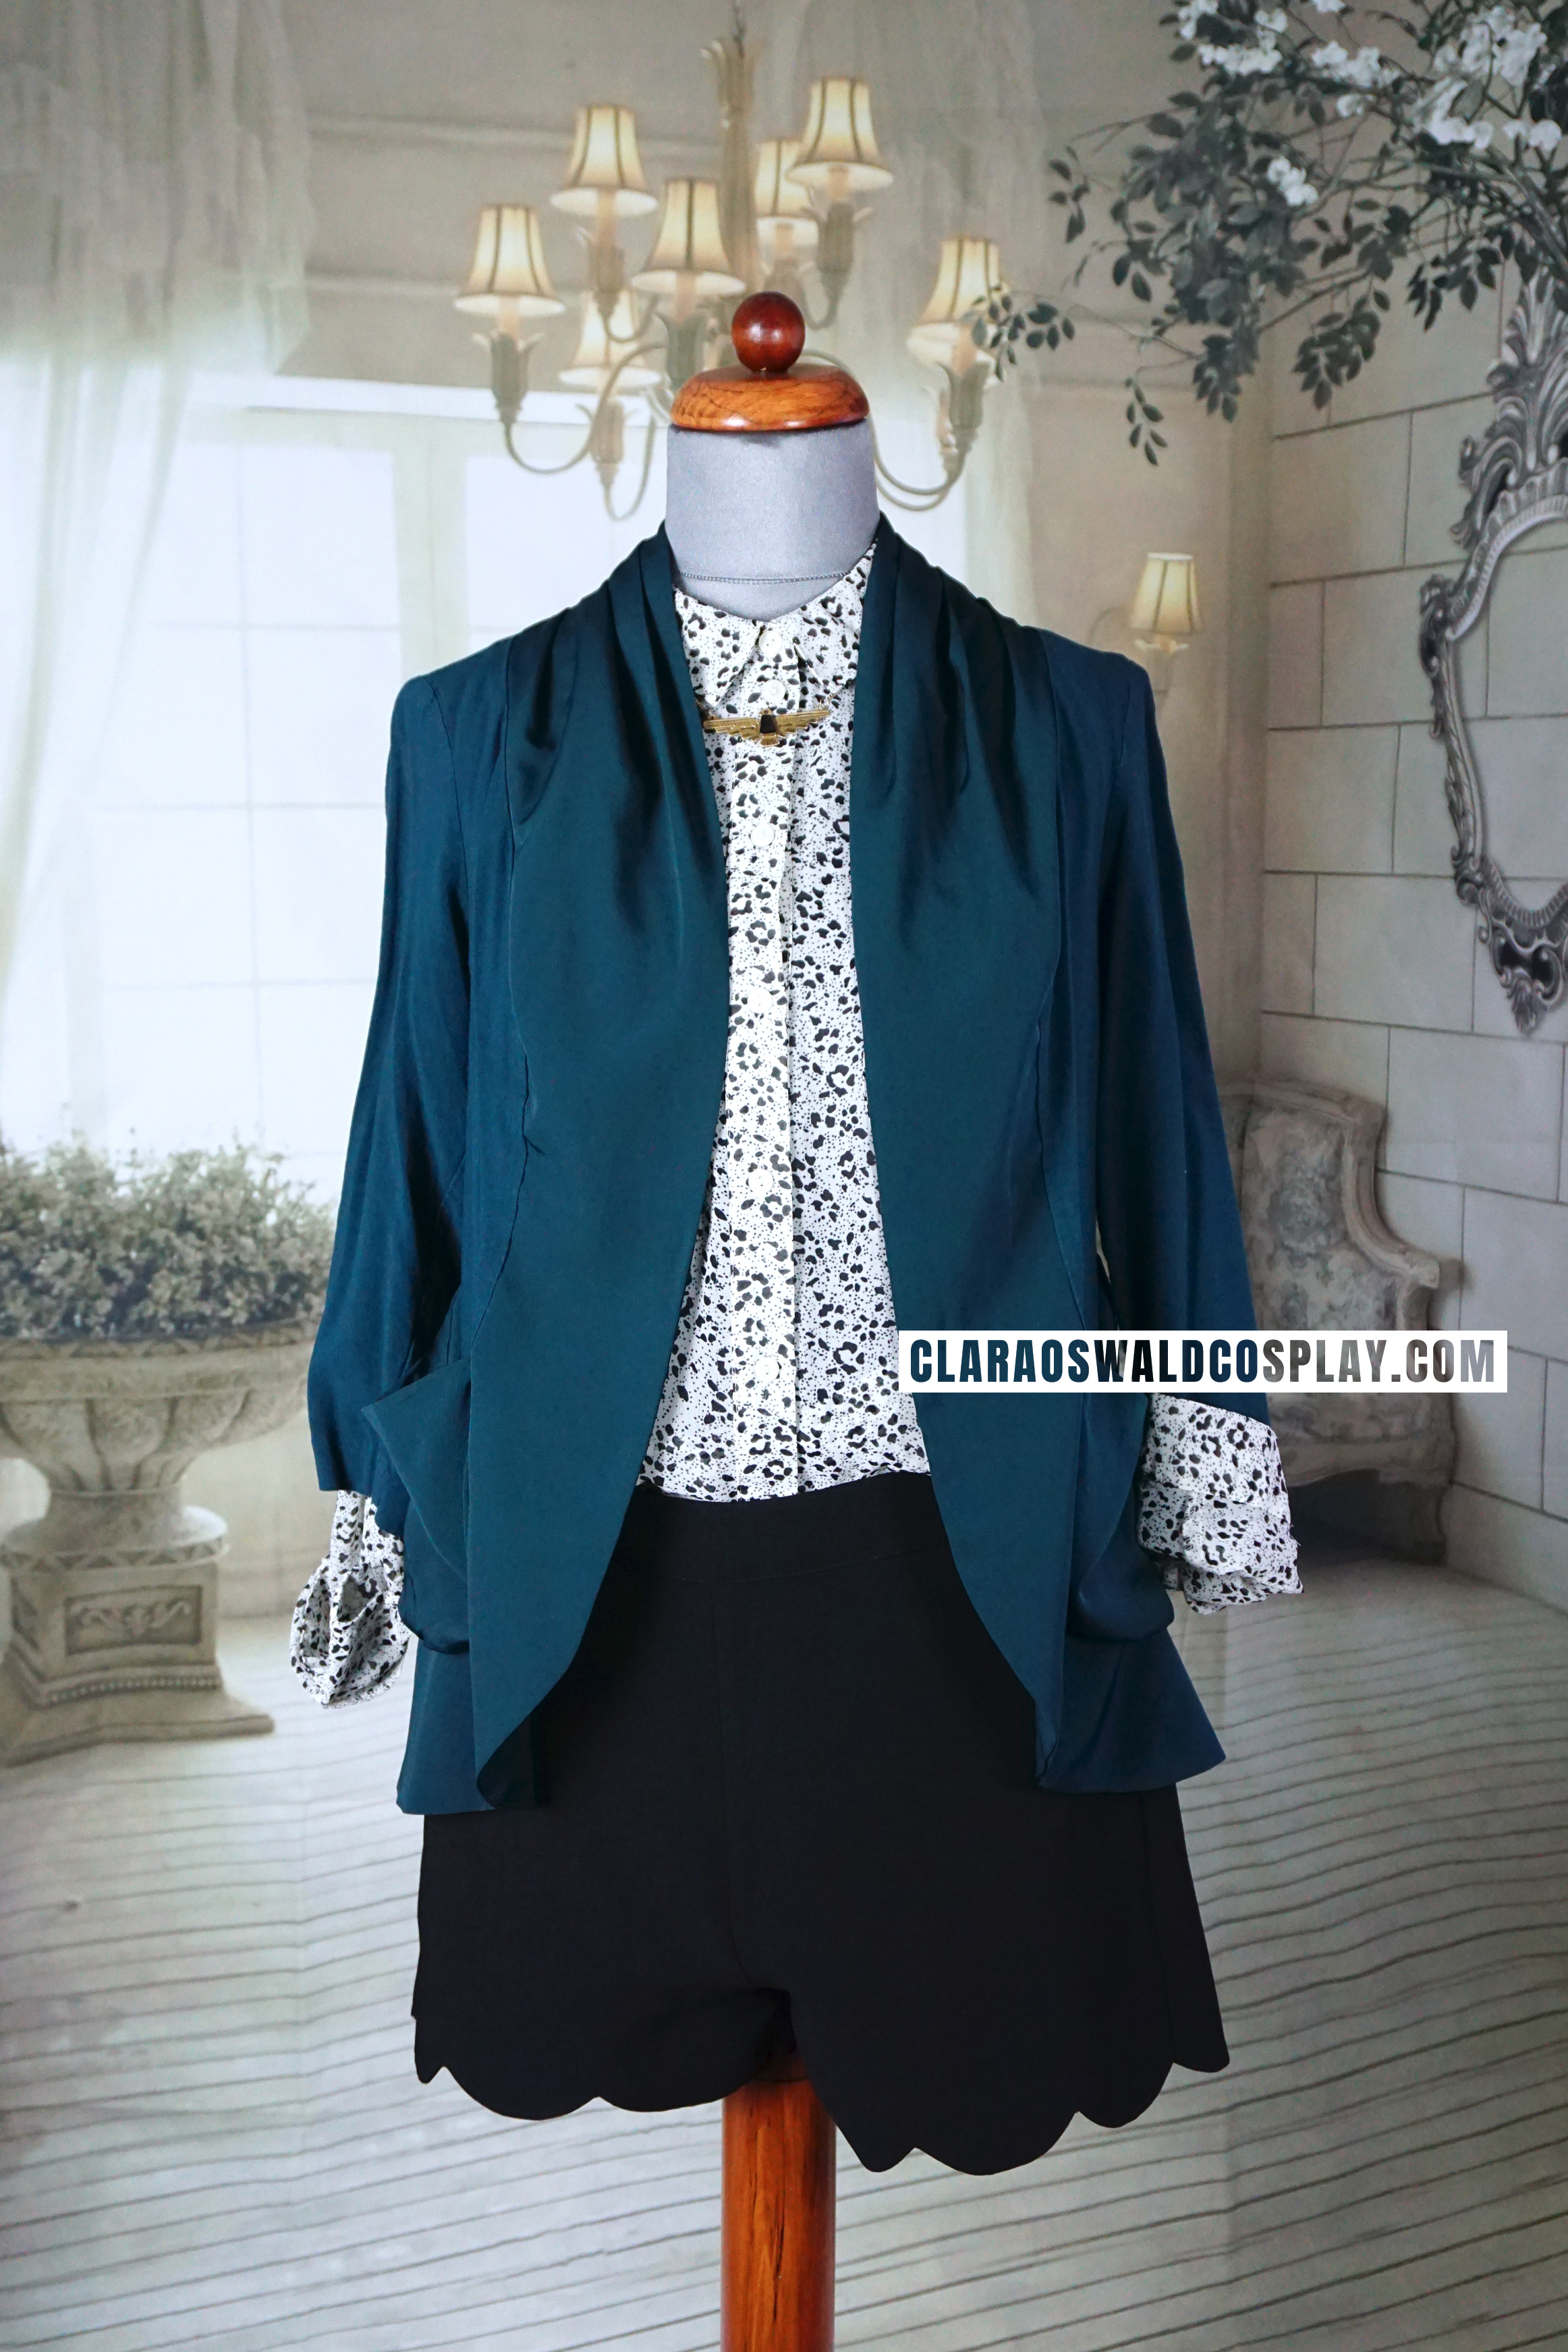 The second Bells of Saint John outfit worn by Clara Oswald featuring the Urban Outfitters Sparkle & Fade Animal Print Blouse and Kimichi Blue Cardigan in green